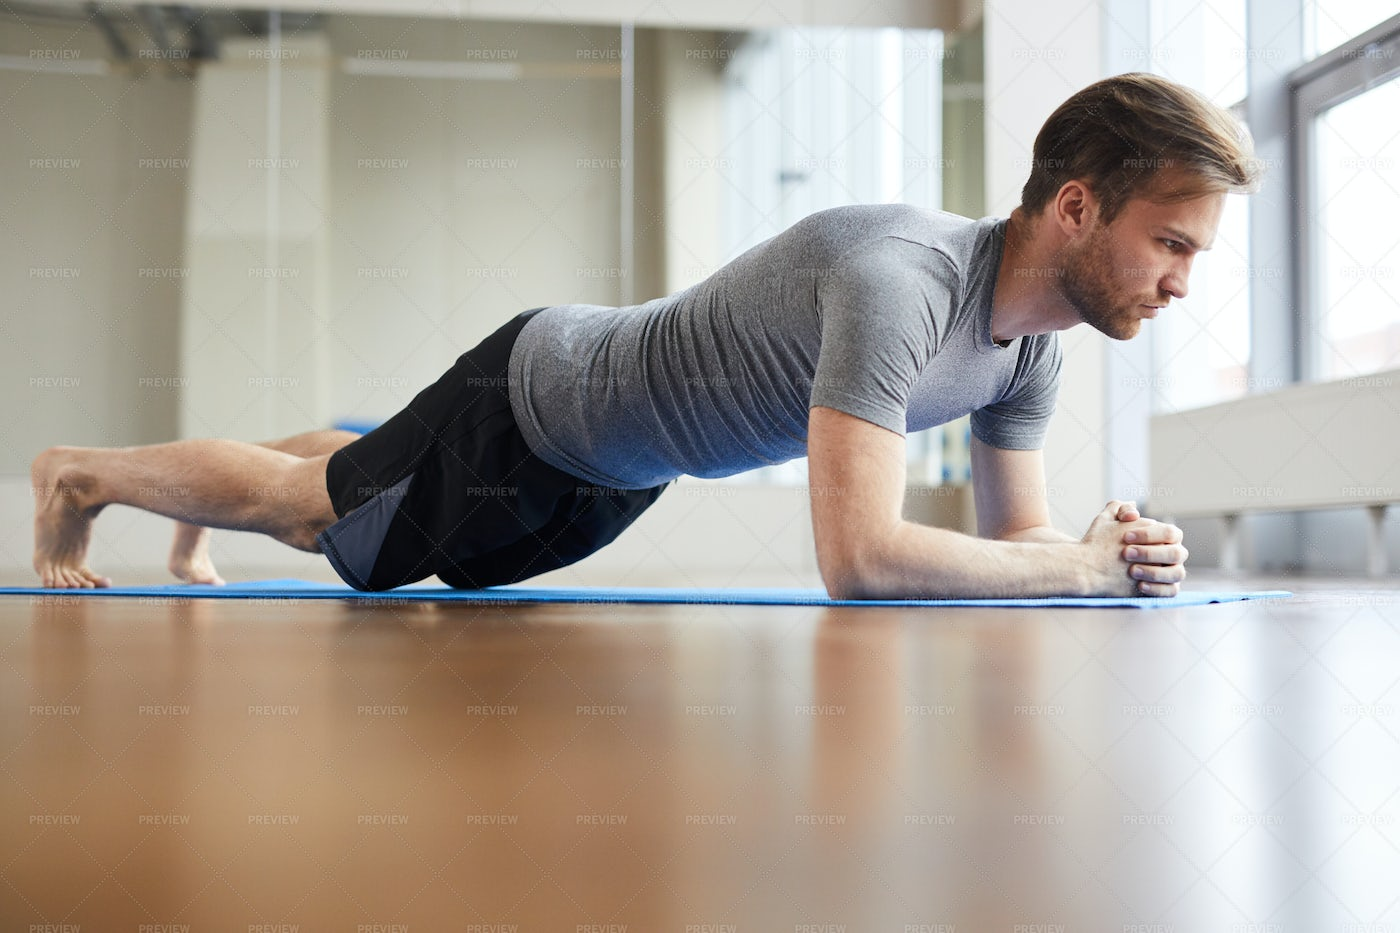 Concentrated Man Doing Plank Pose: Stock Photos